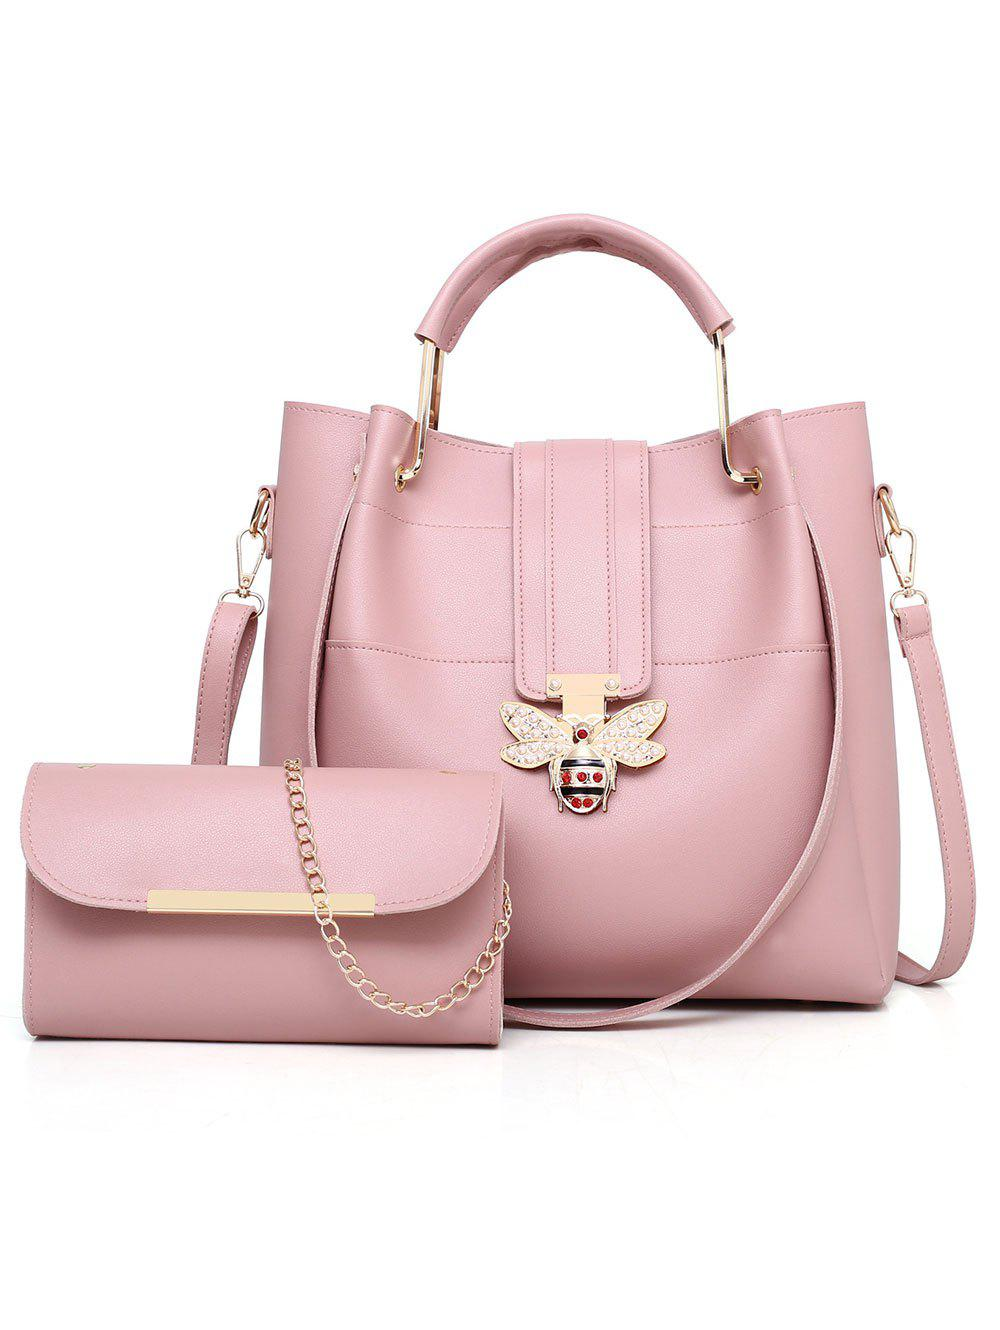 2 Pieces Bee Pattern Closure Embellished Handbag Crossbody Bag Set - PINK